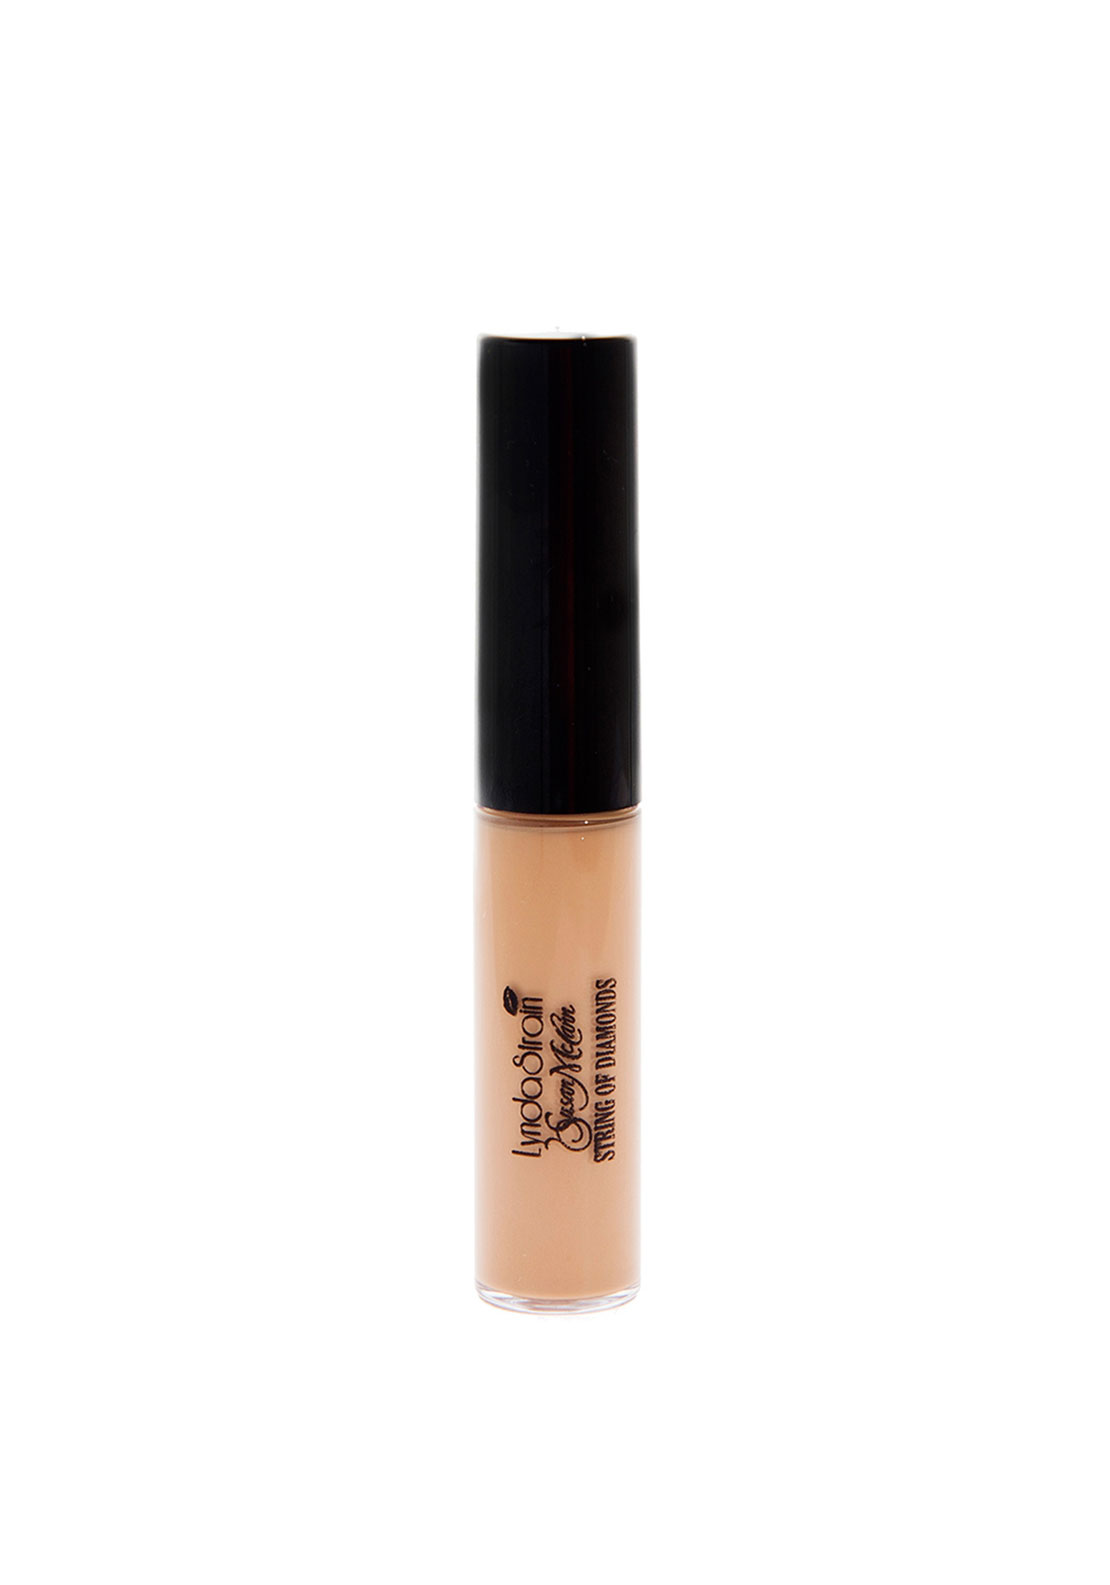 Susan McCann String of Diamonds by Lynda Strain Concealer, Diamond 2